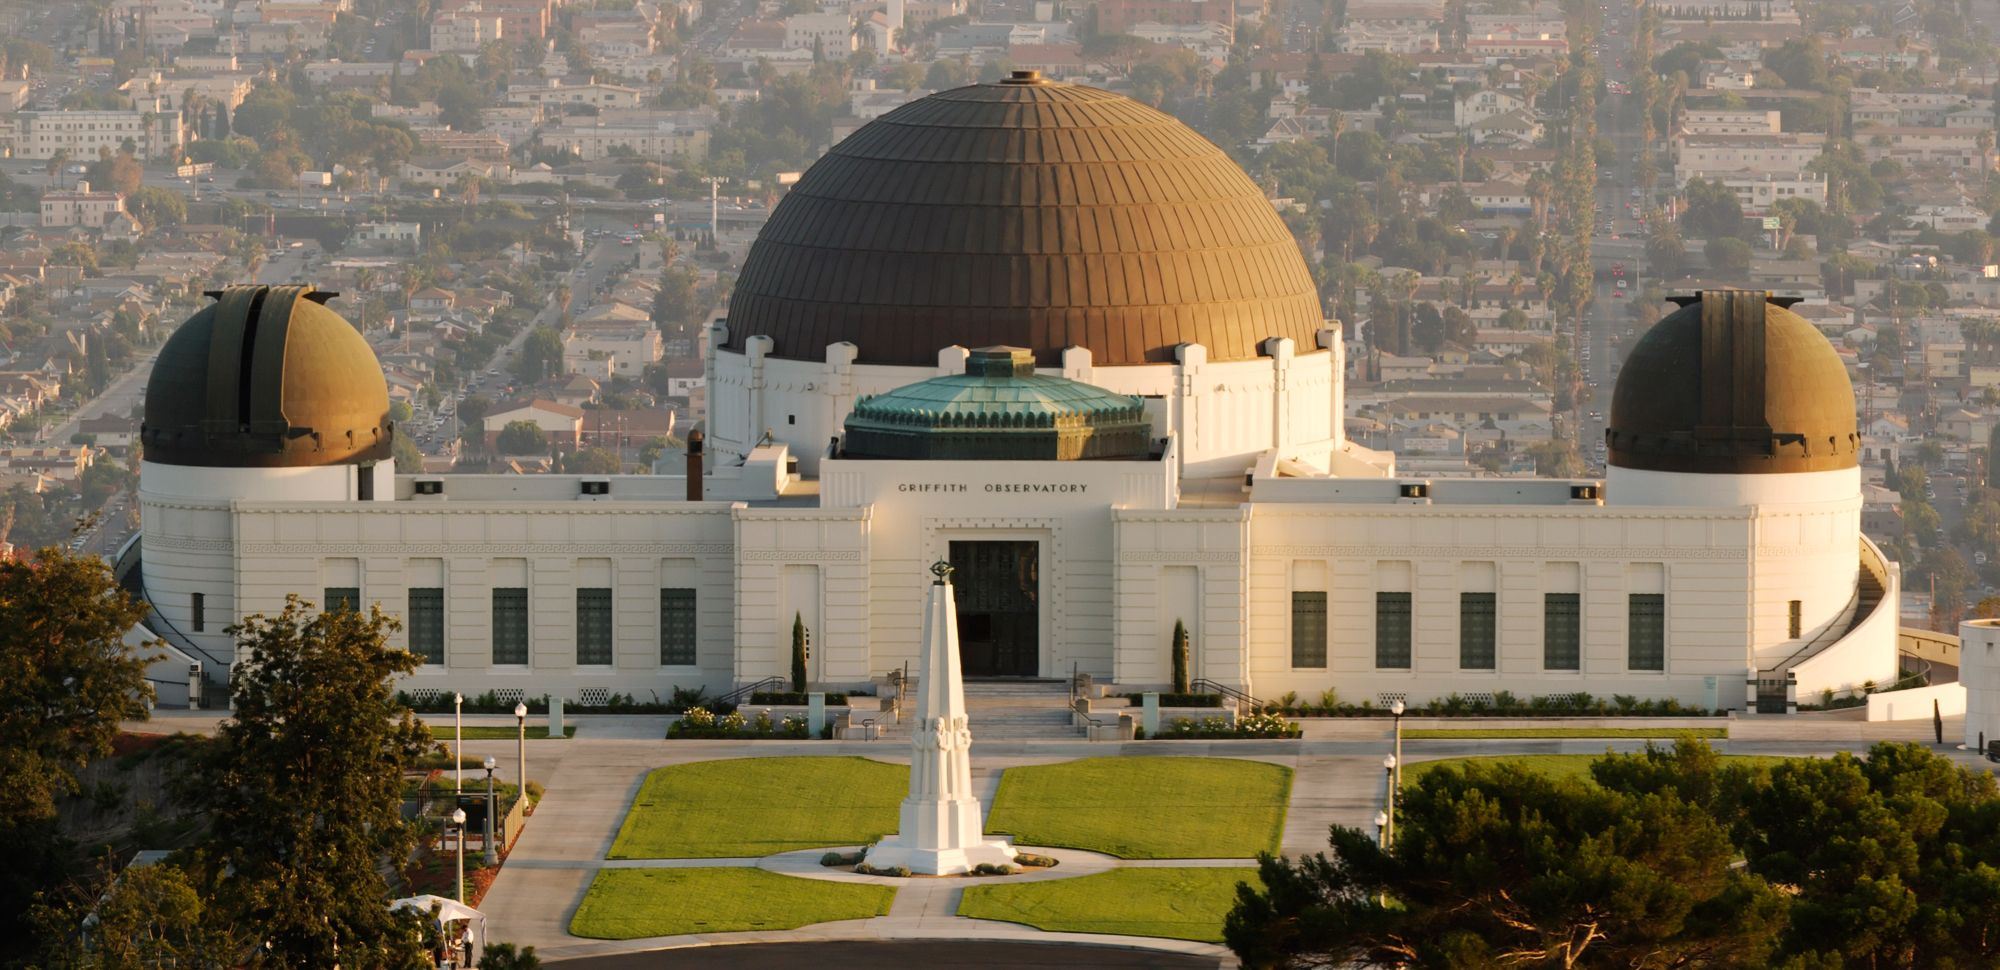 An Icon Of Los Angeles Griffith Observatory Is A Popular Attraction In Southern California Los Angeles Attractions Los Angeles Tourism Griffith Observatory